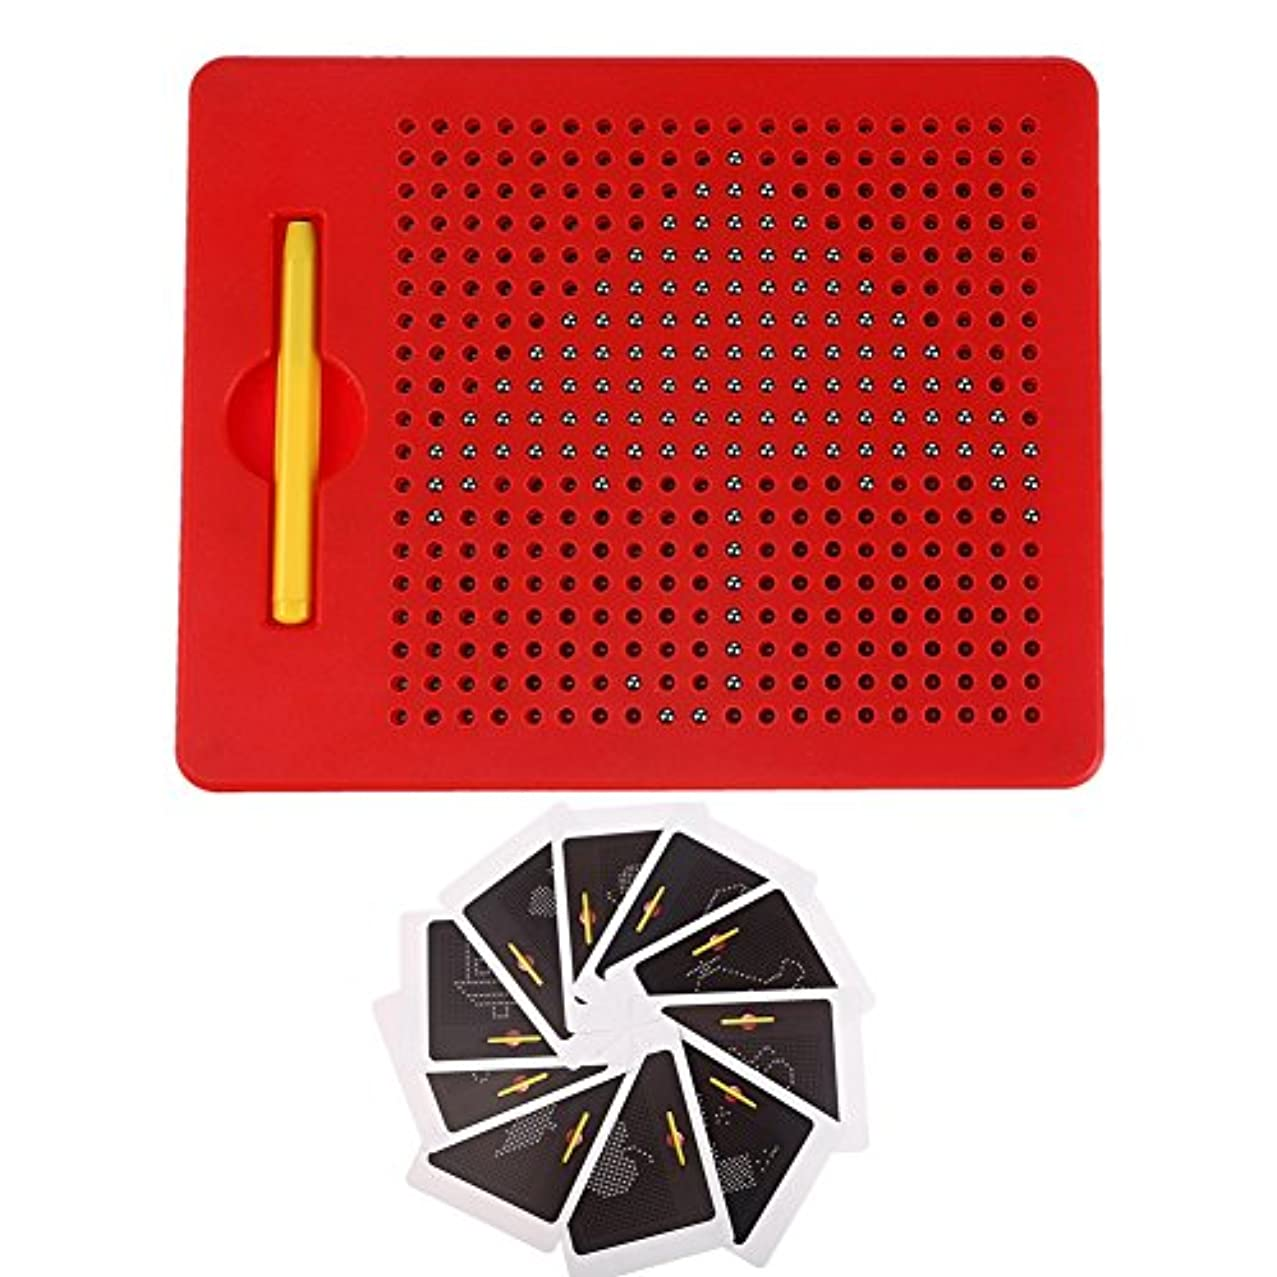 Free Play Magnapad Magnetic Drawing Board Tablet Writing Pad for Kids with Stylus and 10pcs Cards(Small, Red)